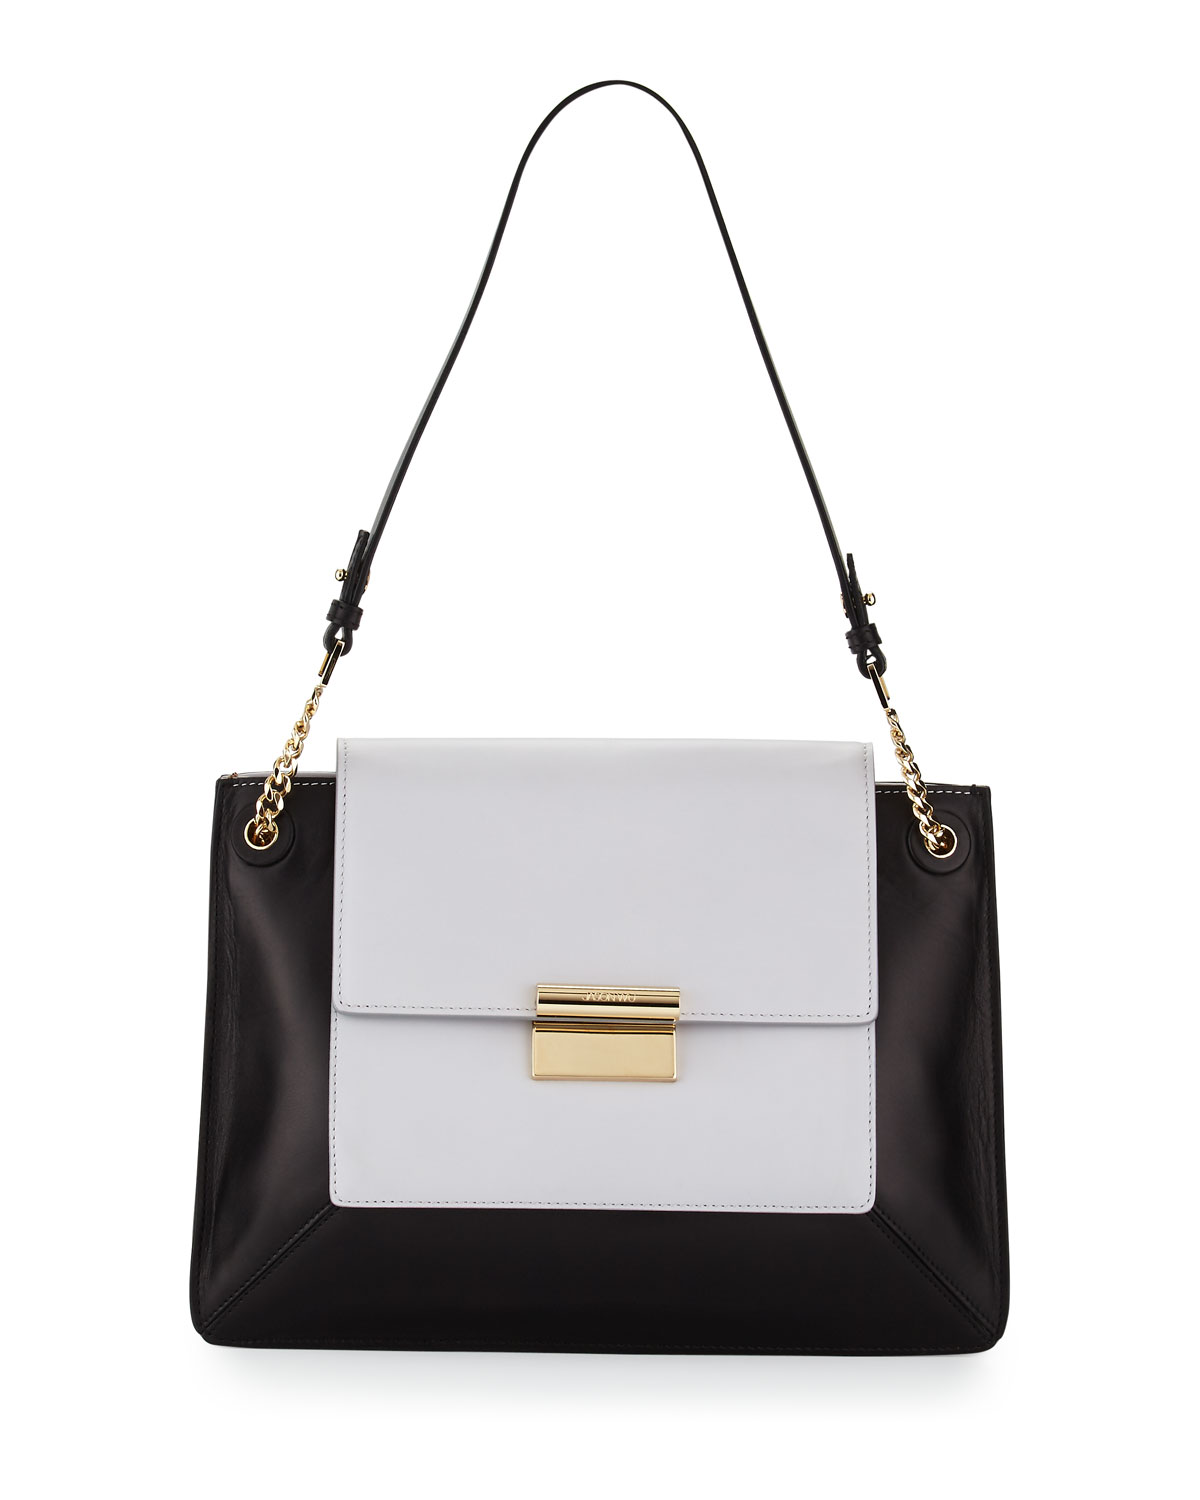 Christy Two Tone Leather Shoulder Bag